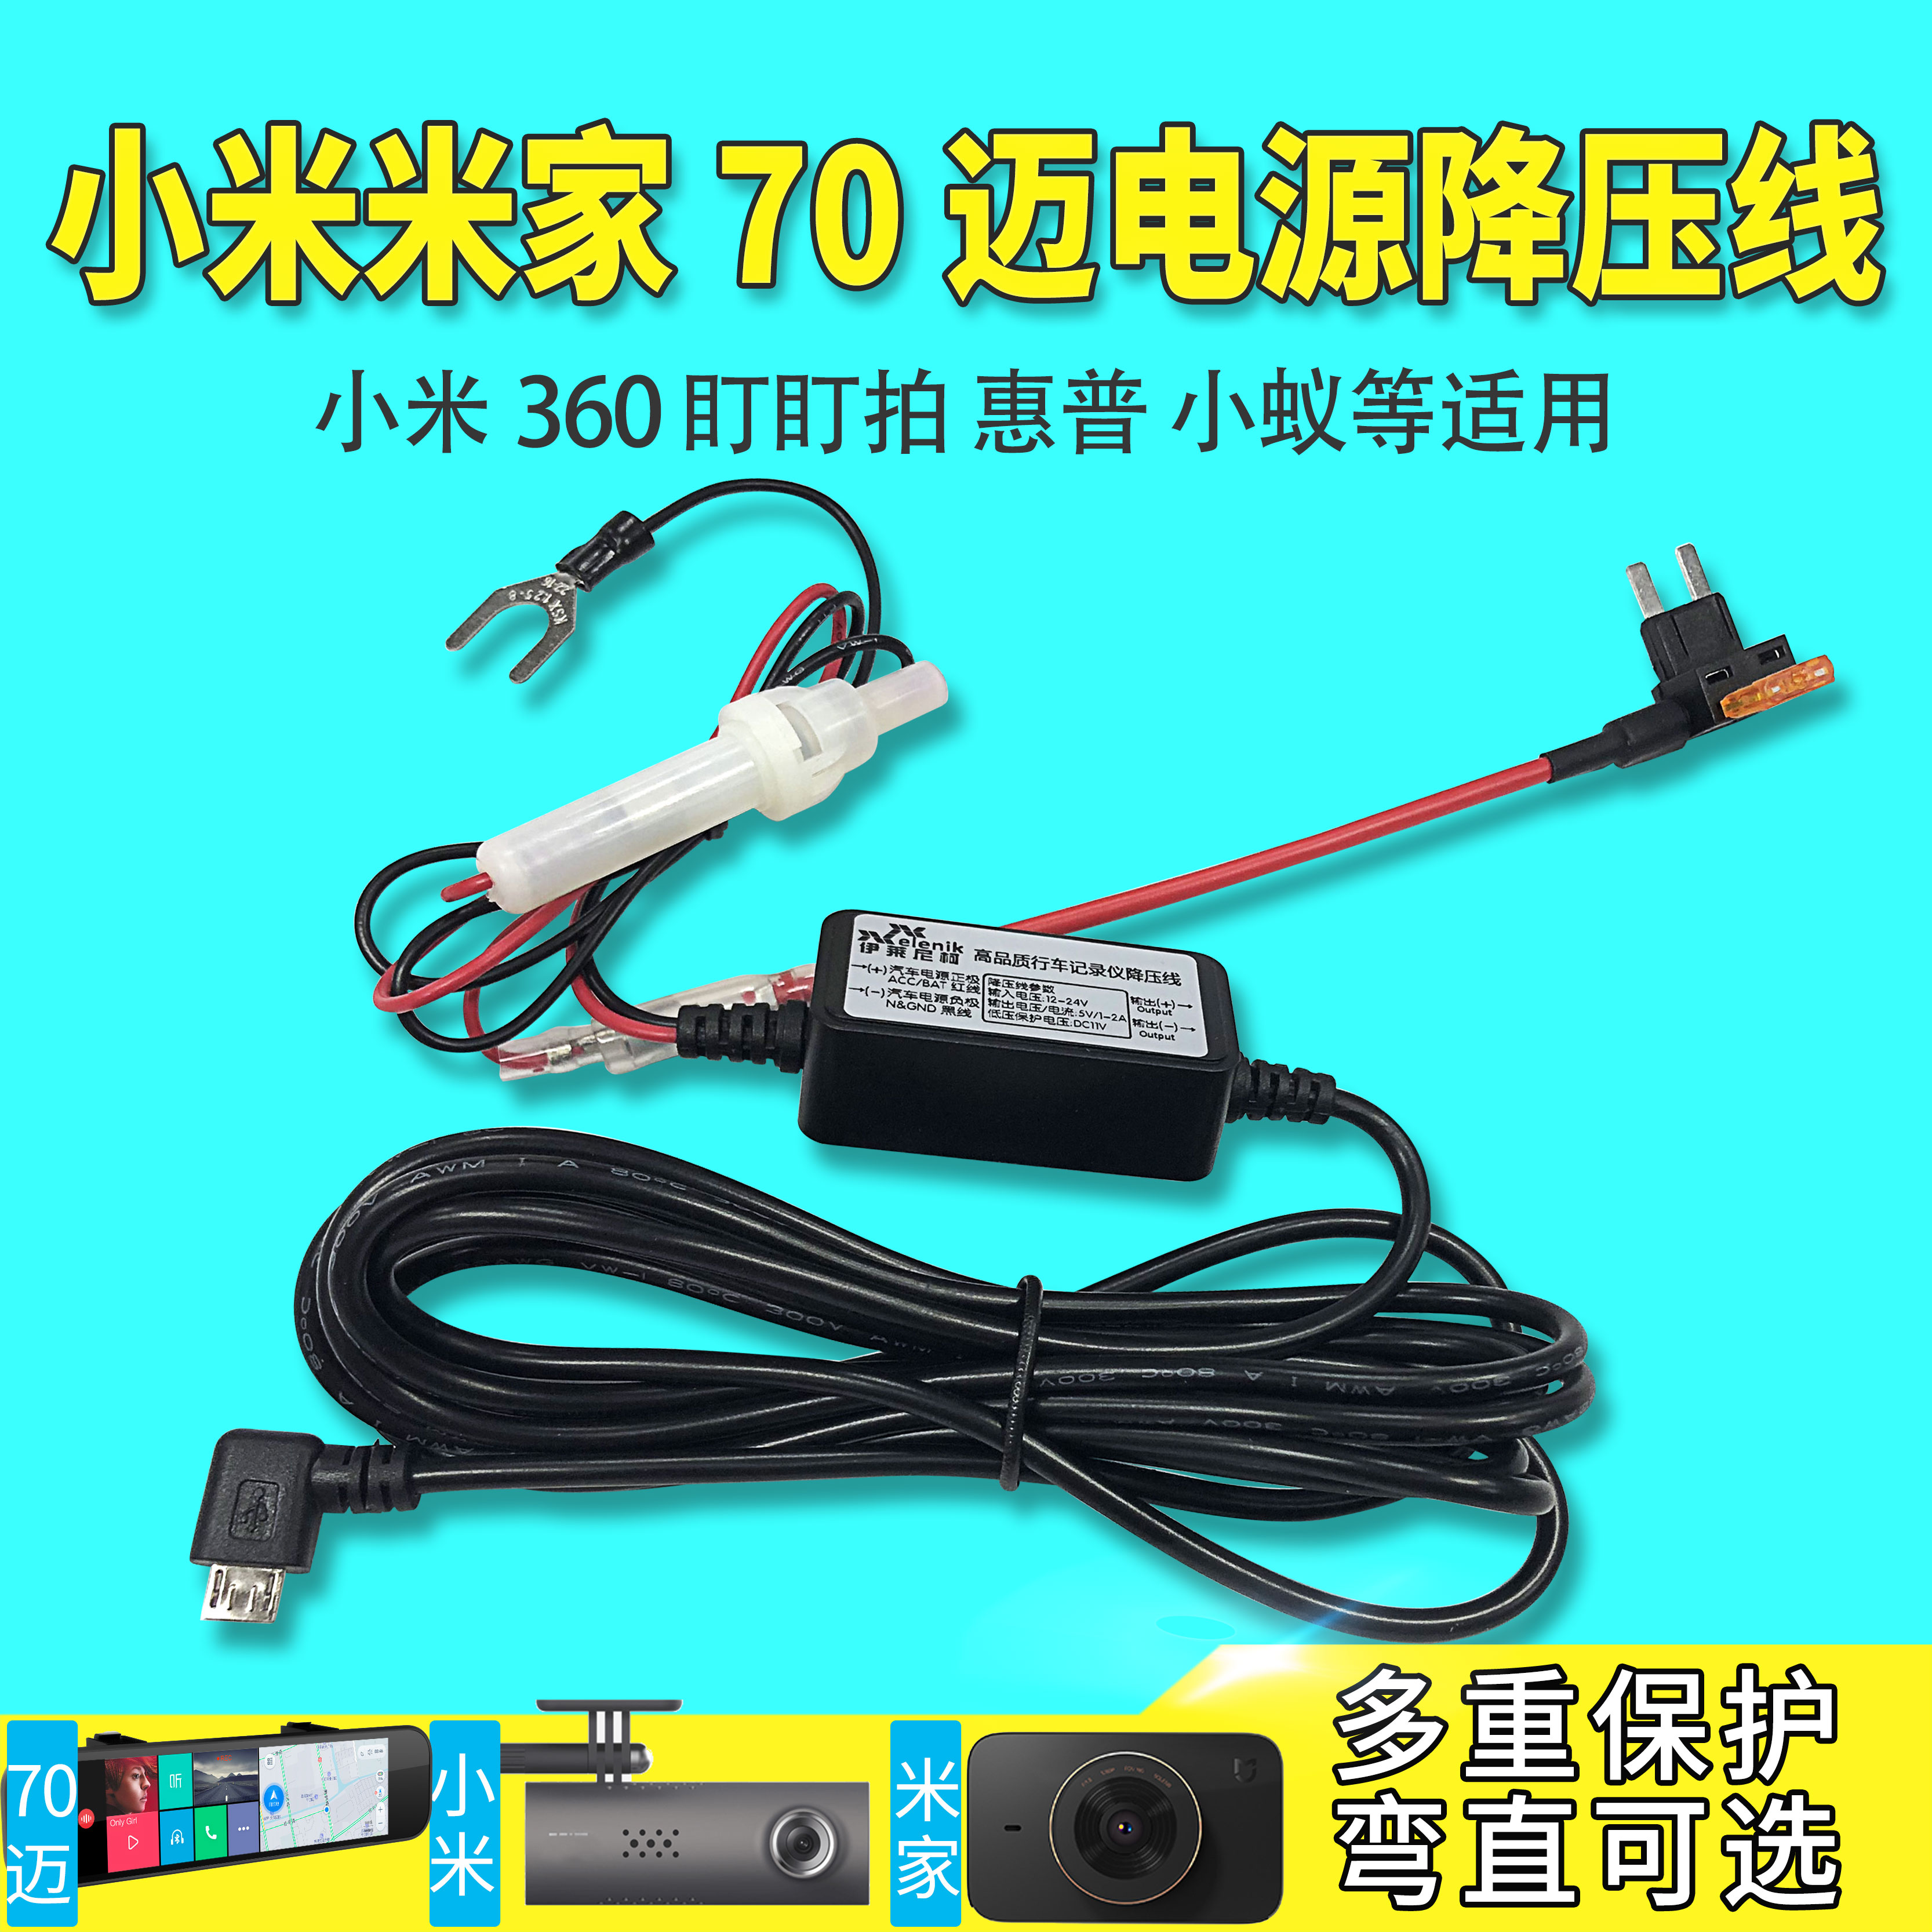 Usd 2516 Xiaomi Mi Home 70 Mai D01 M1 Intelligent Driving Recorder Electrical Wiring Items Dedicated Step Down Line Power